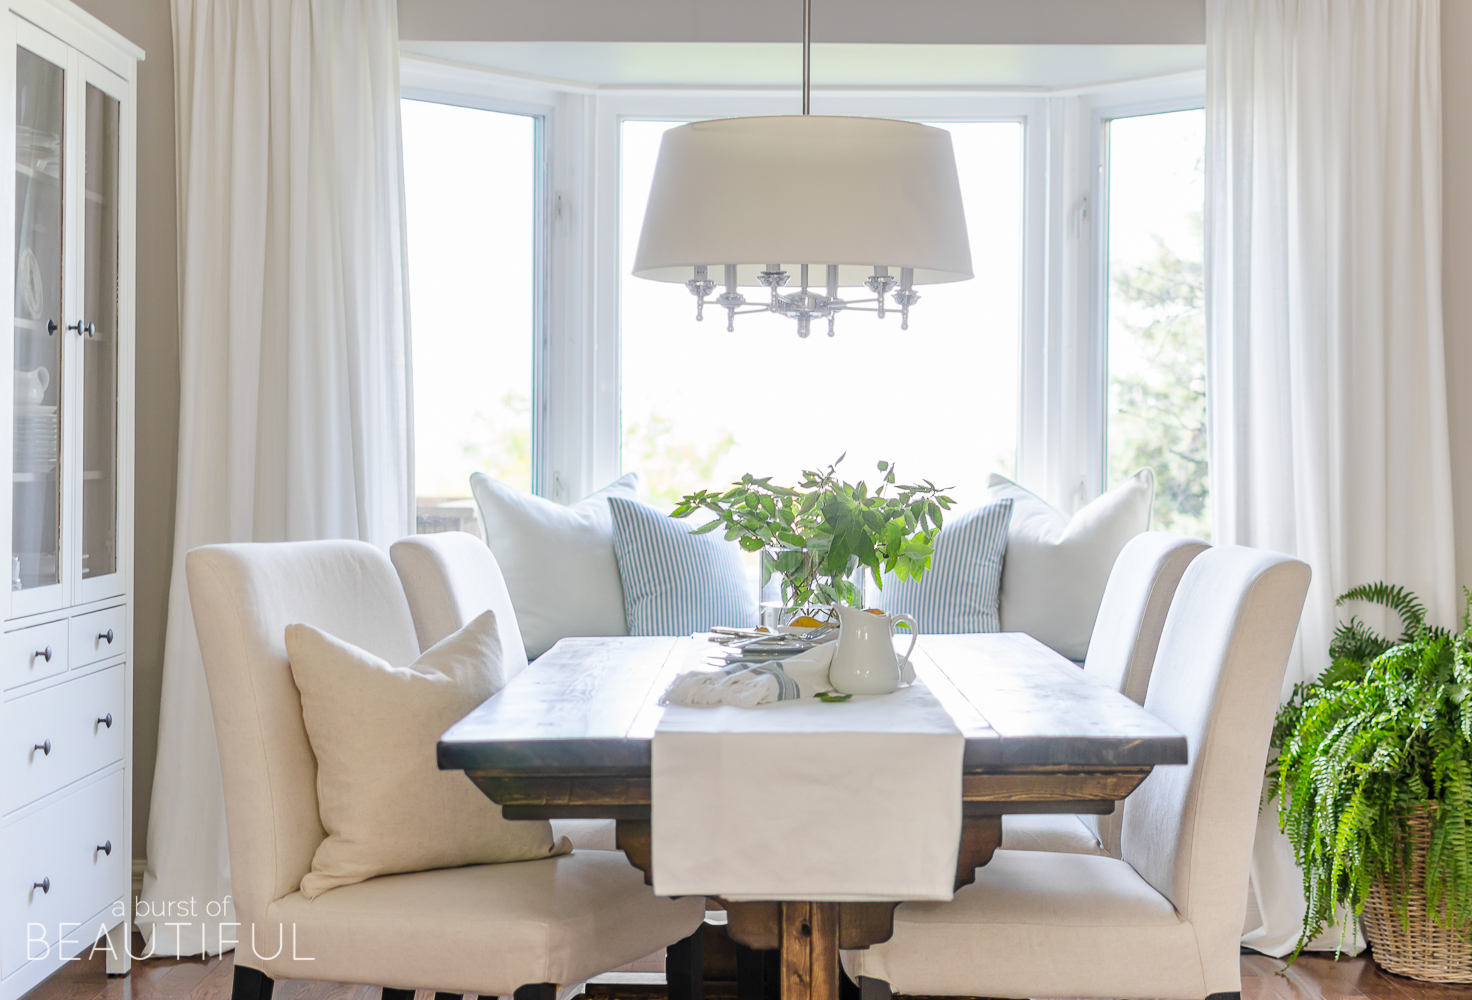 A Bright And Inviting Dining Room Boasts Simple Farmhouse Style With Diy Table